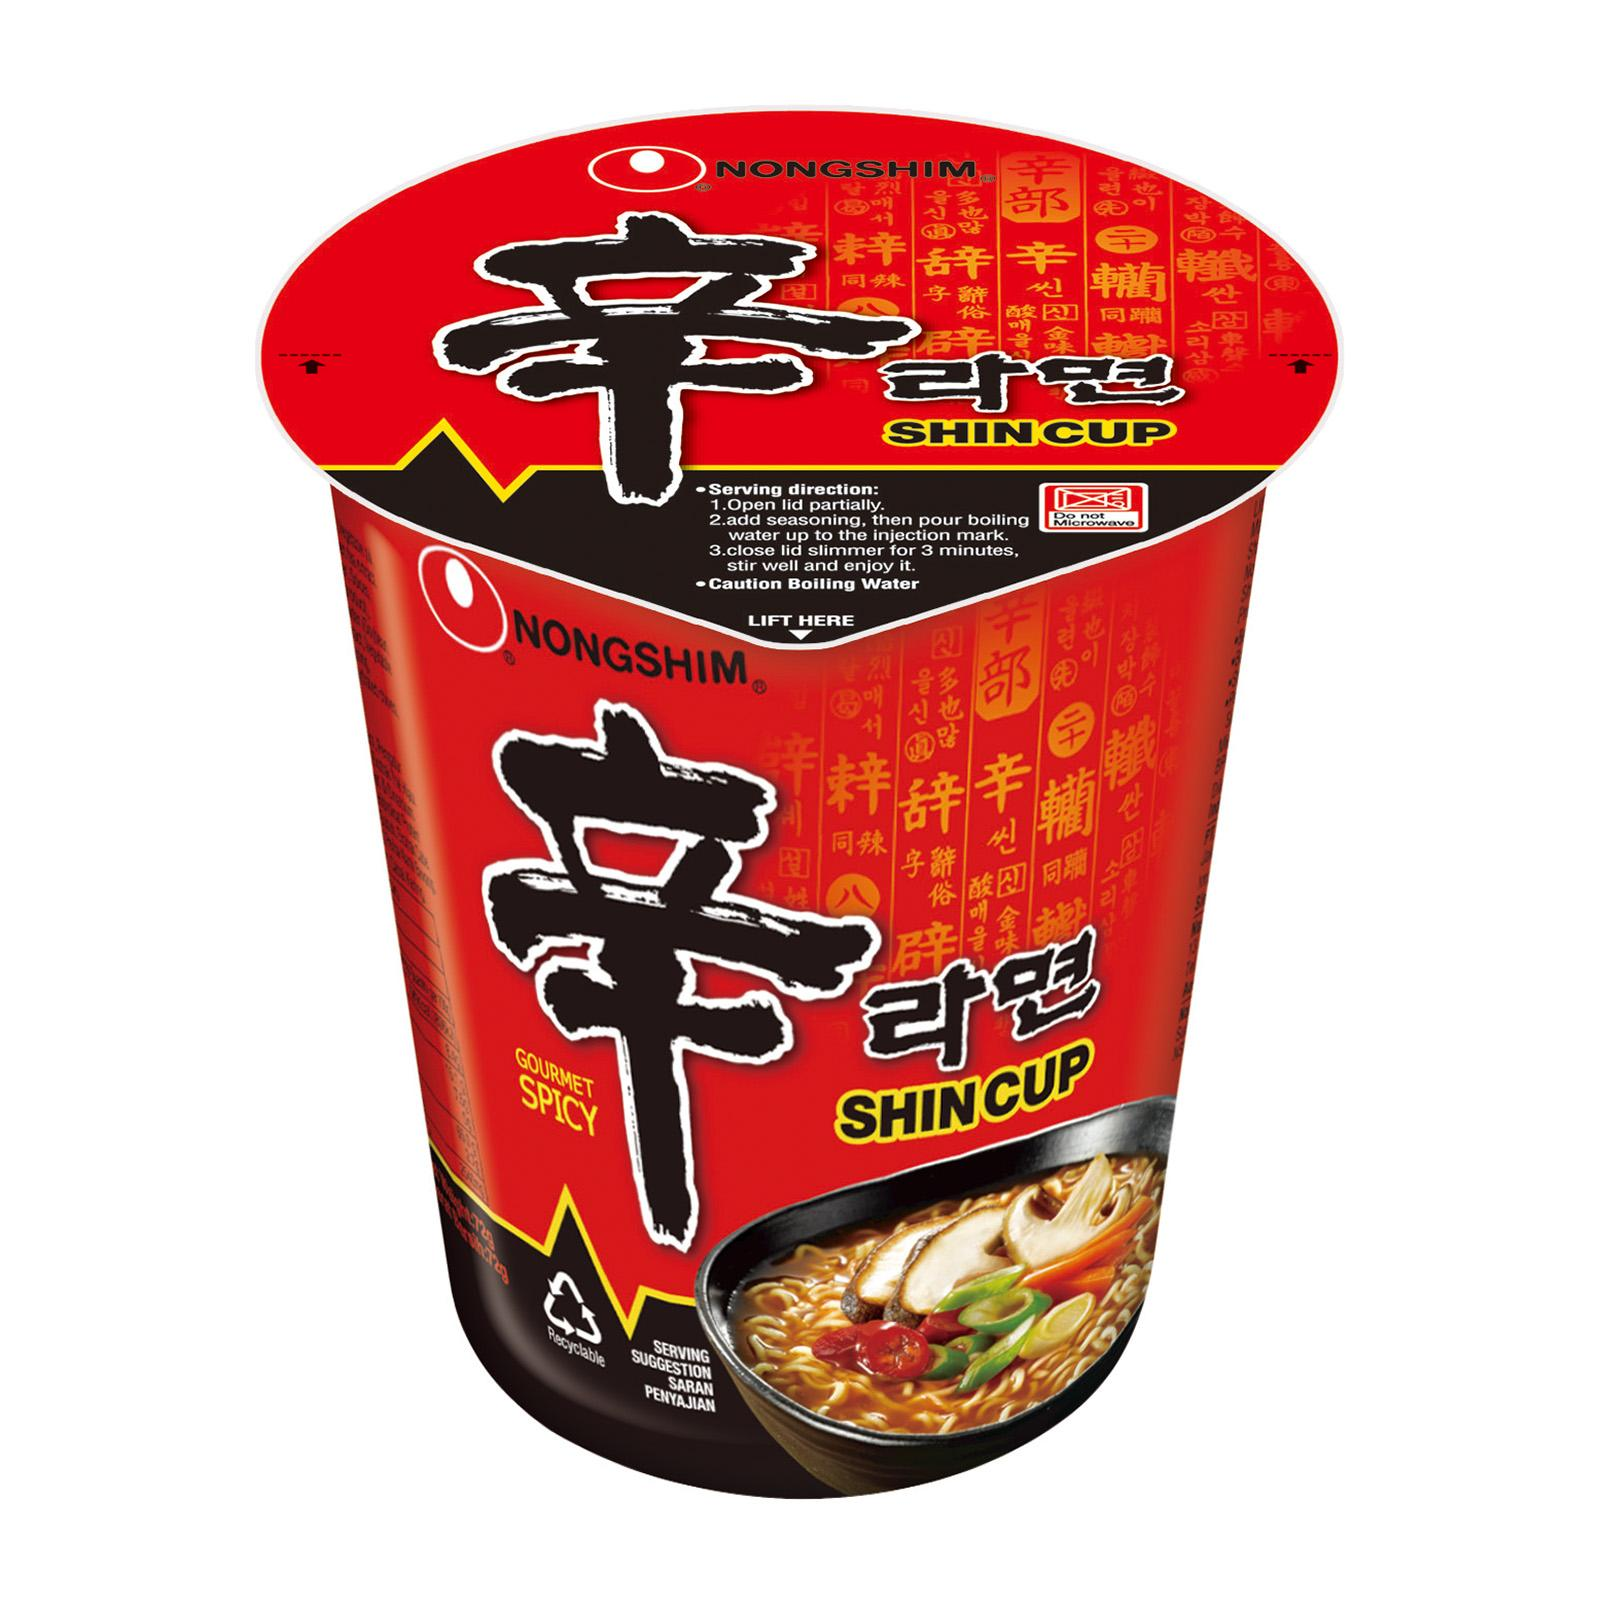 Nongshim Spicy Mushroom Flavored Cup Noodles